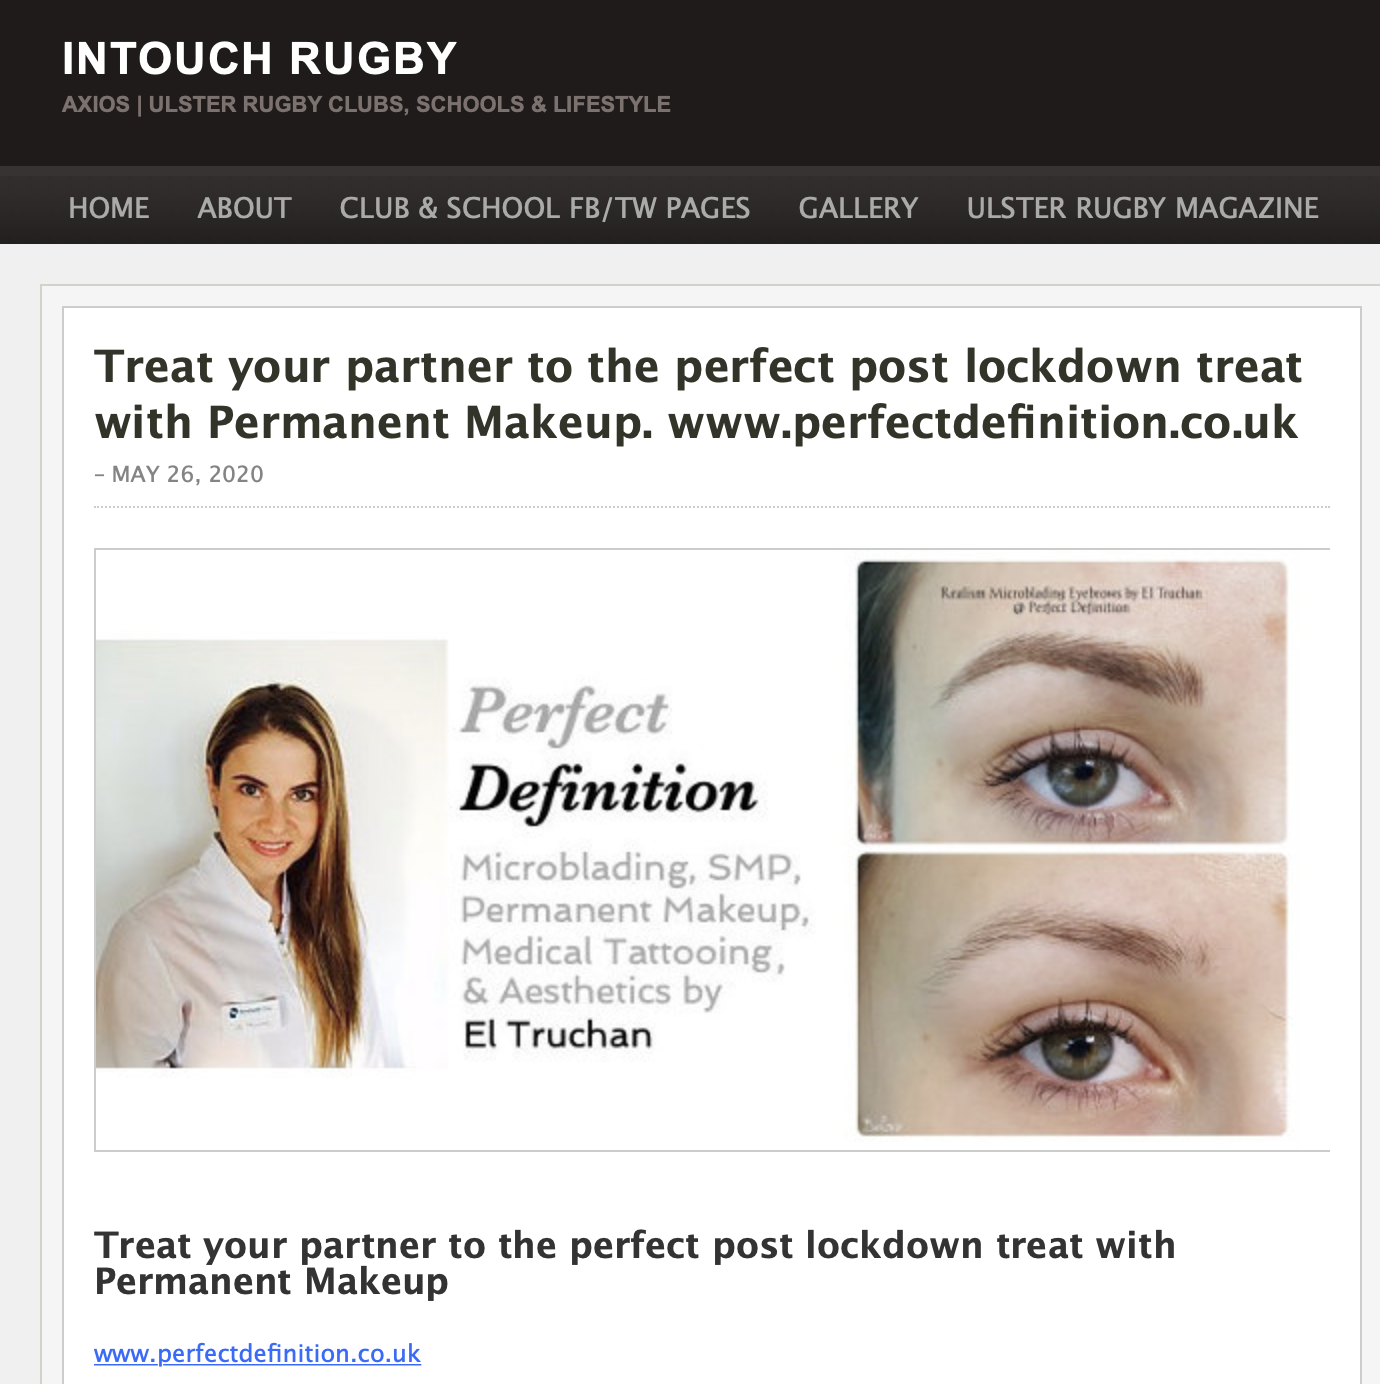 Intouch Rugby Perfect Definition